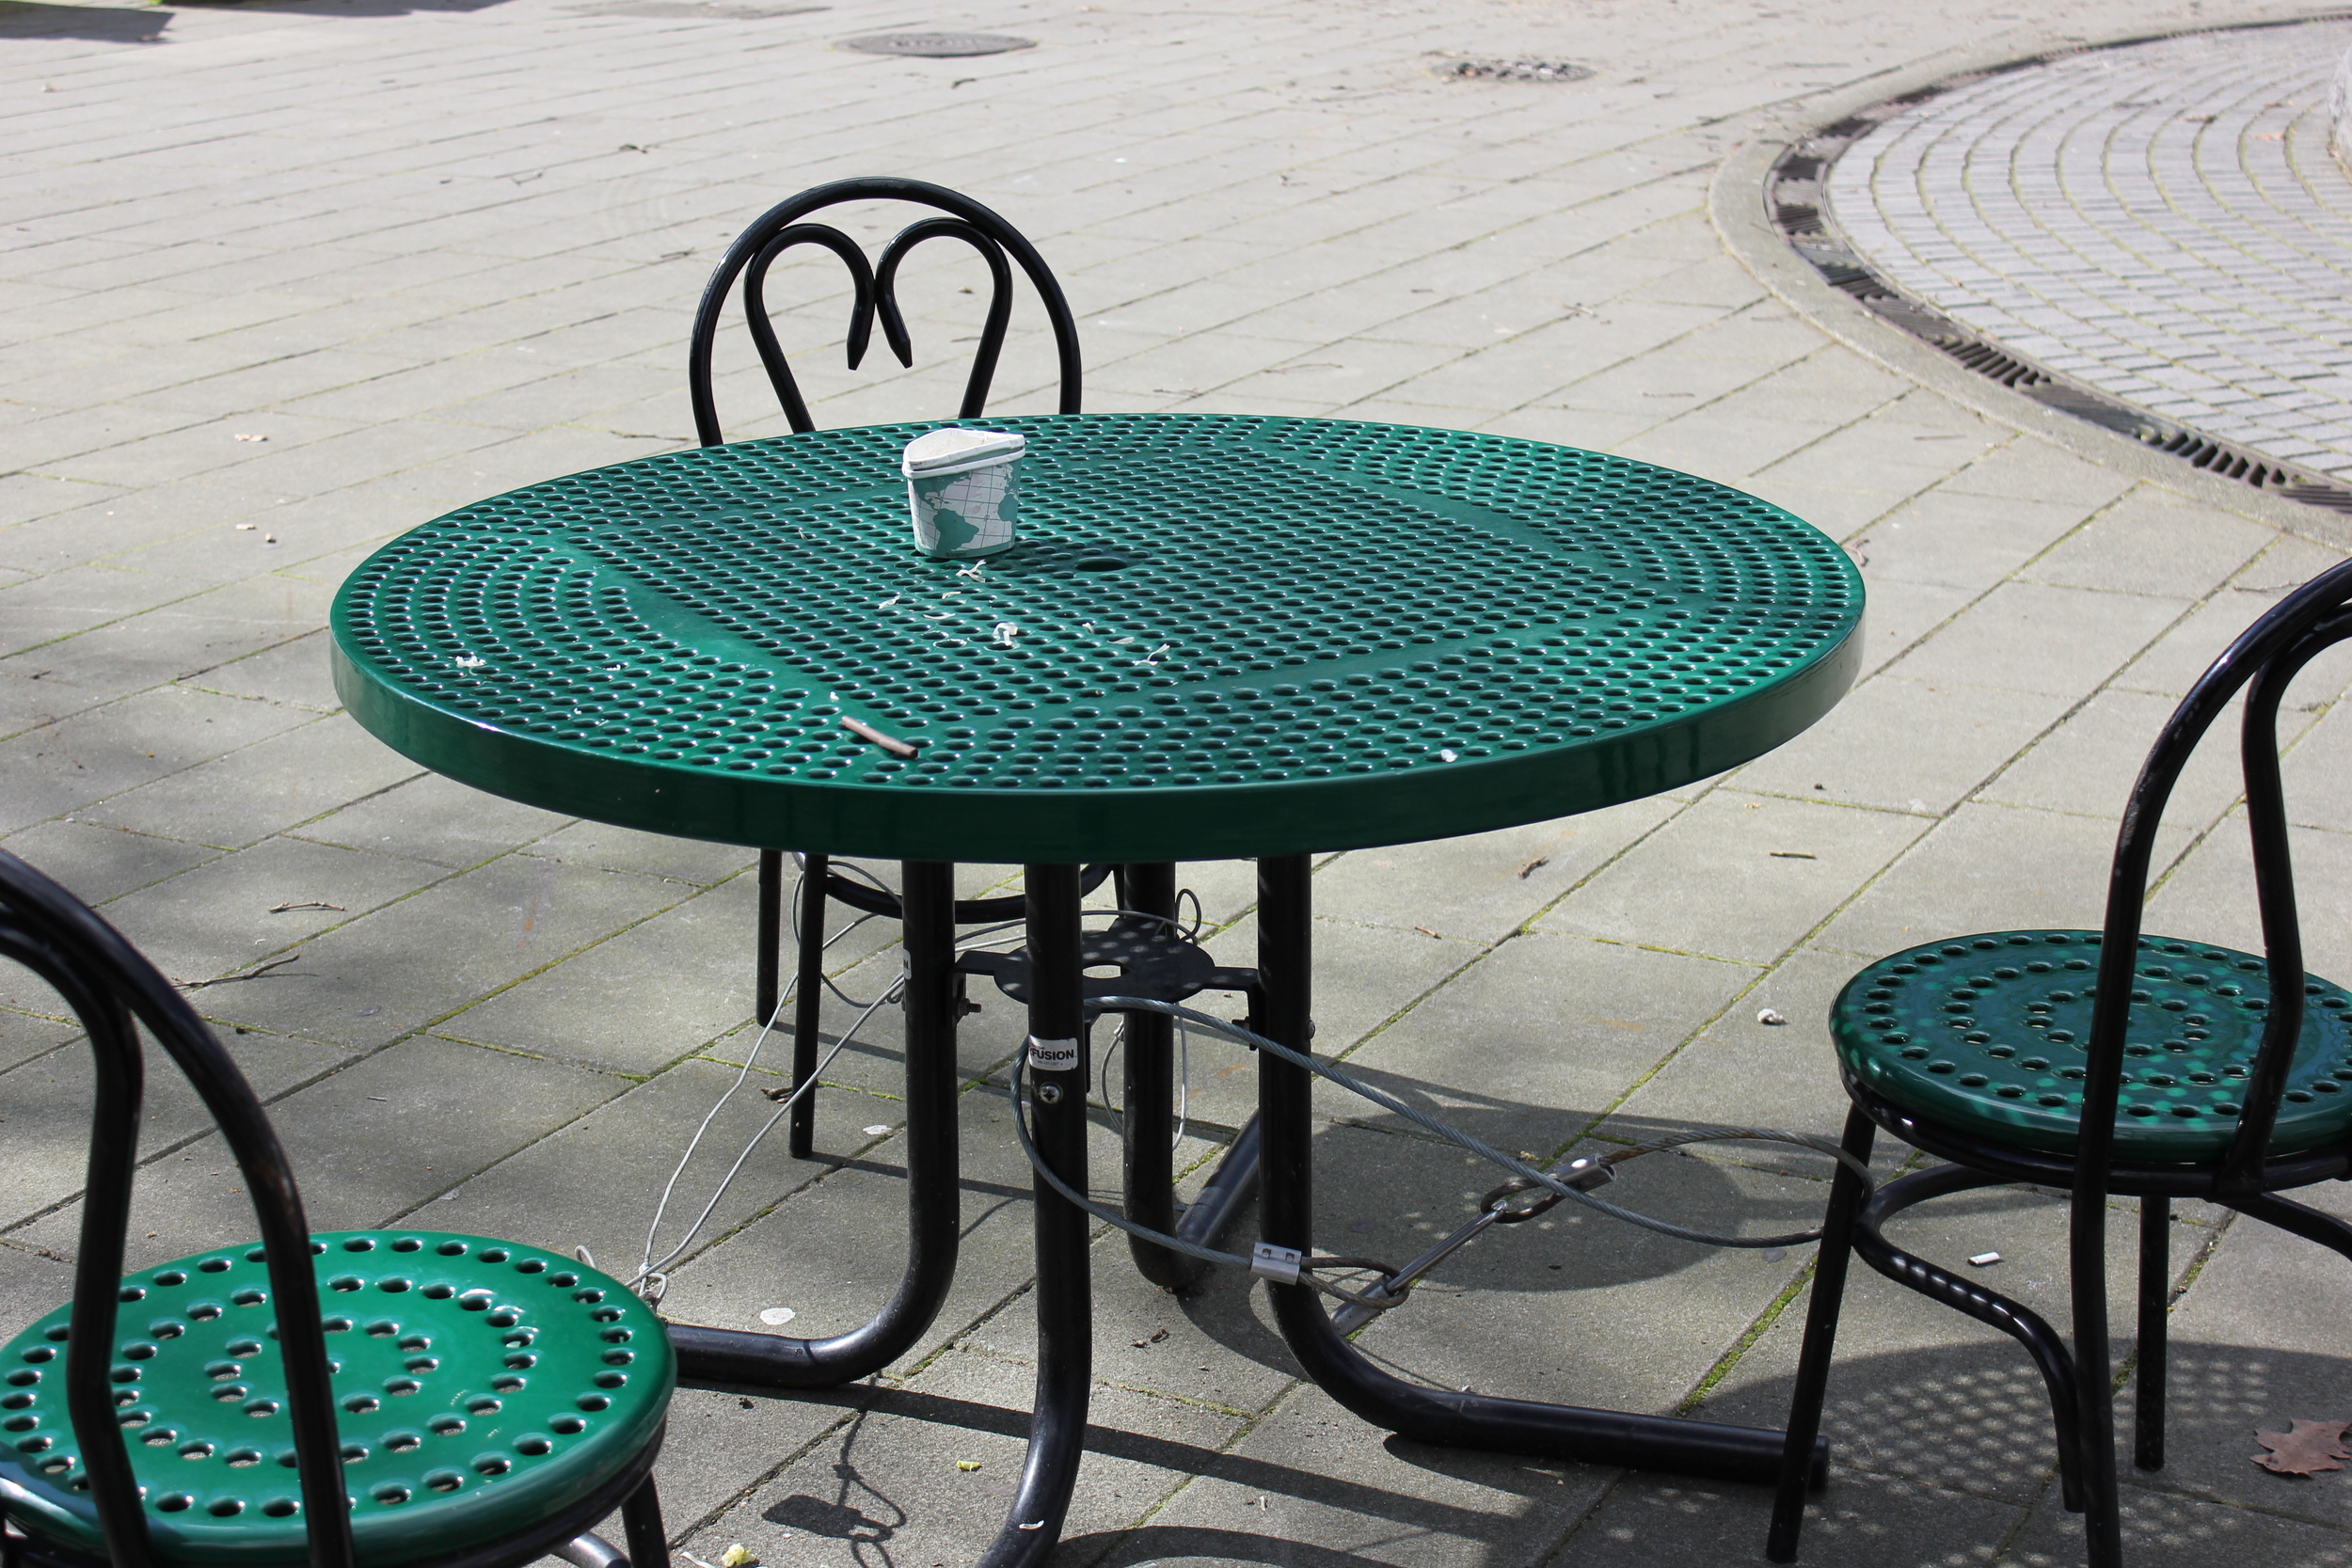 Chairs and tables chained to the ground in Tilikum Place.